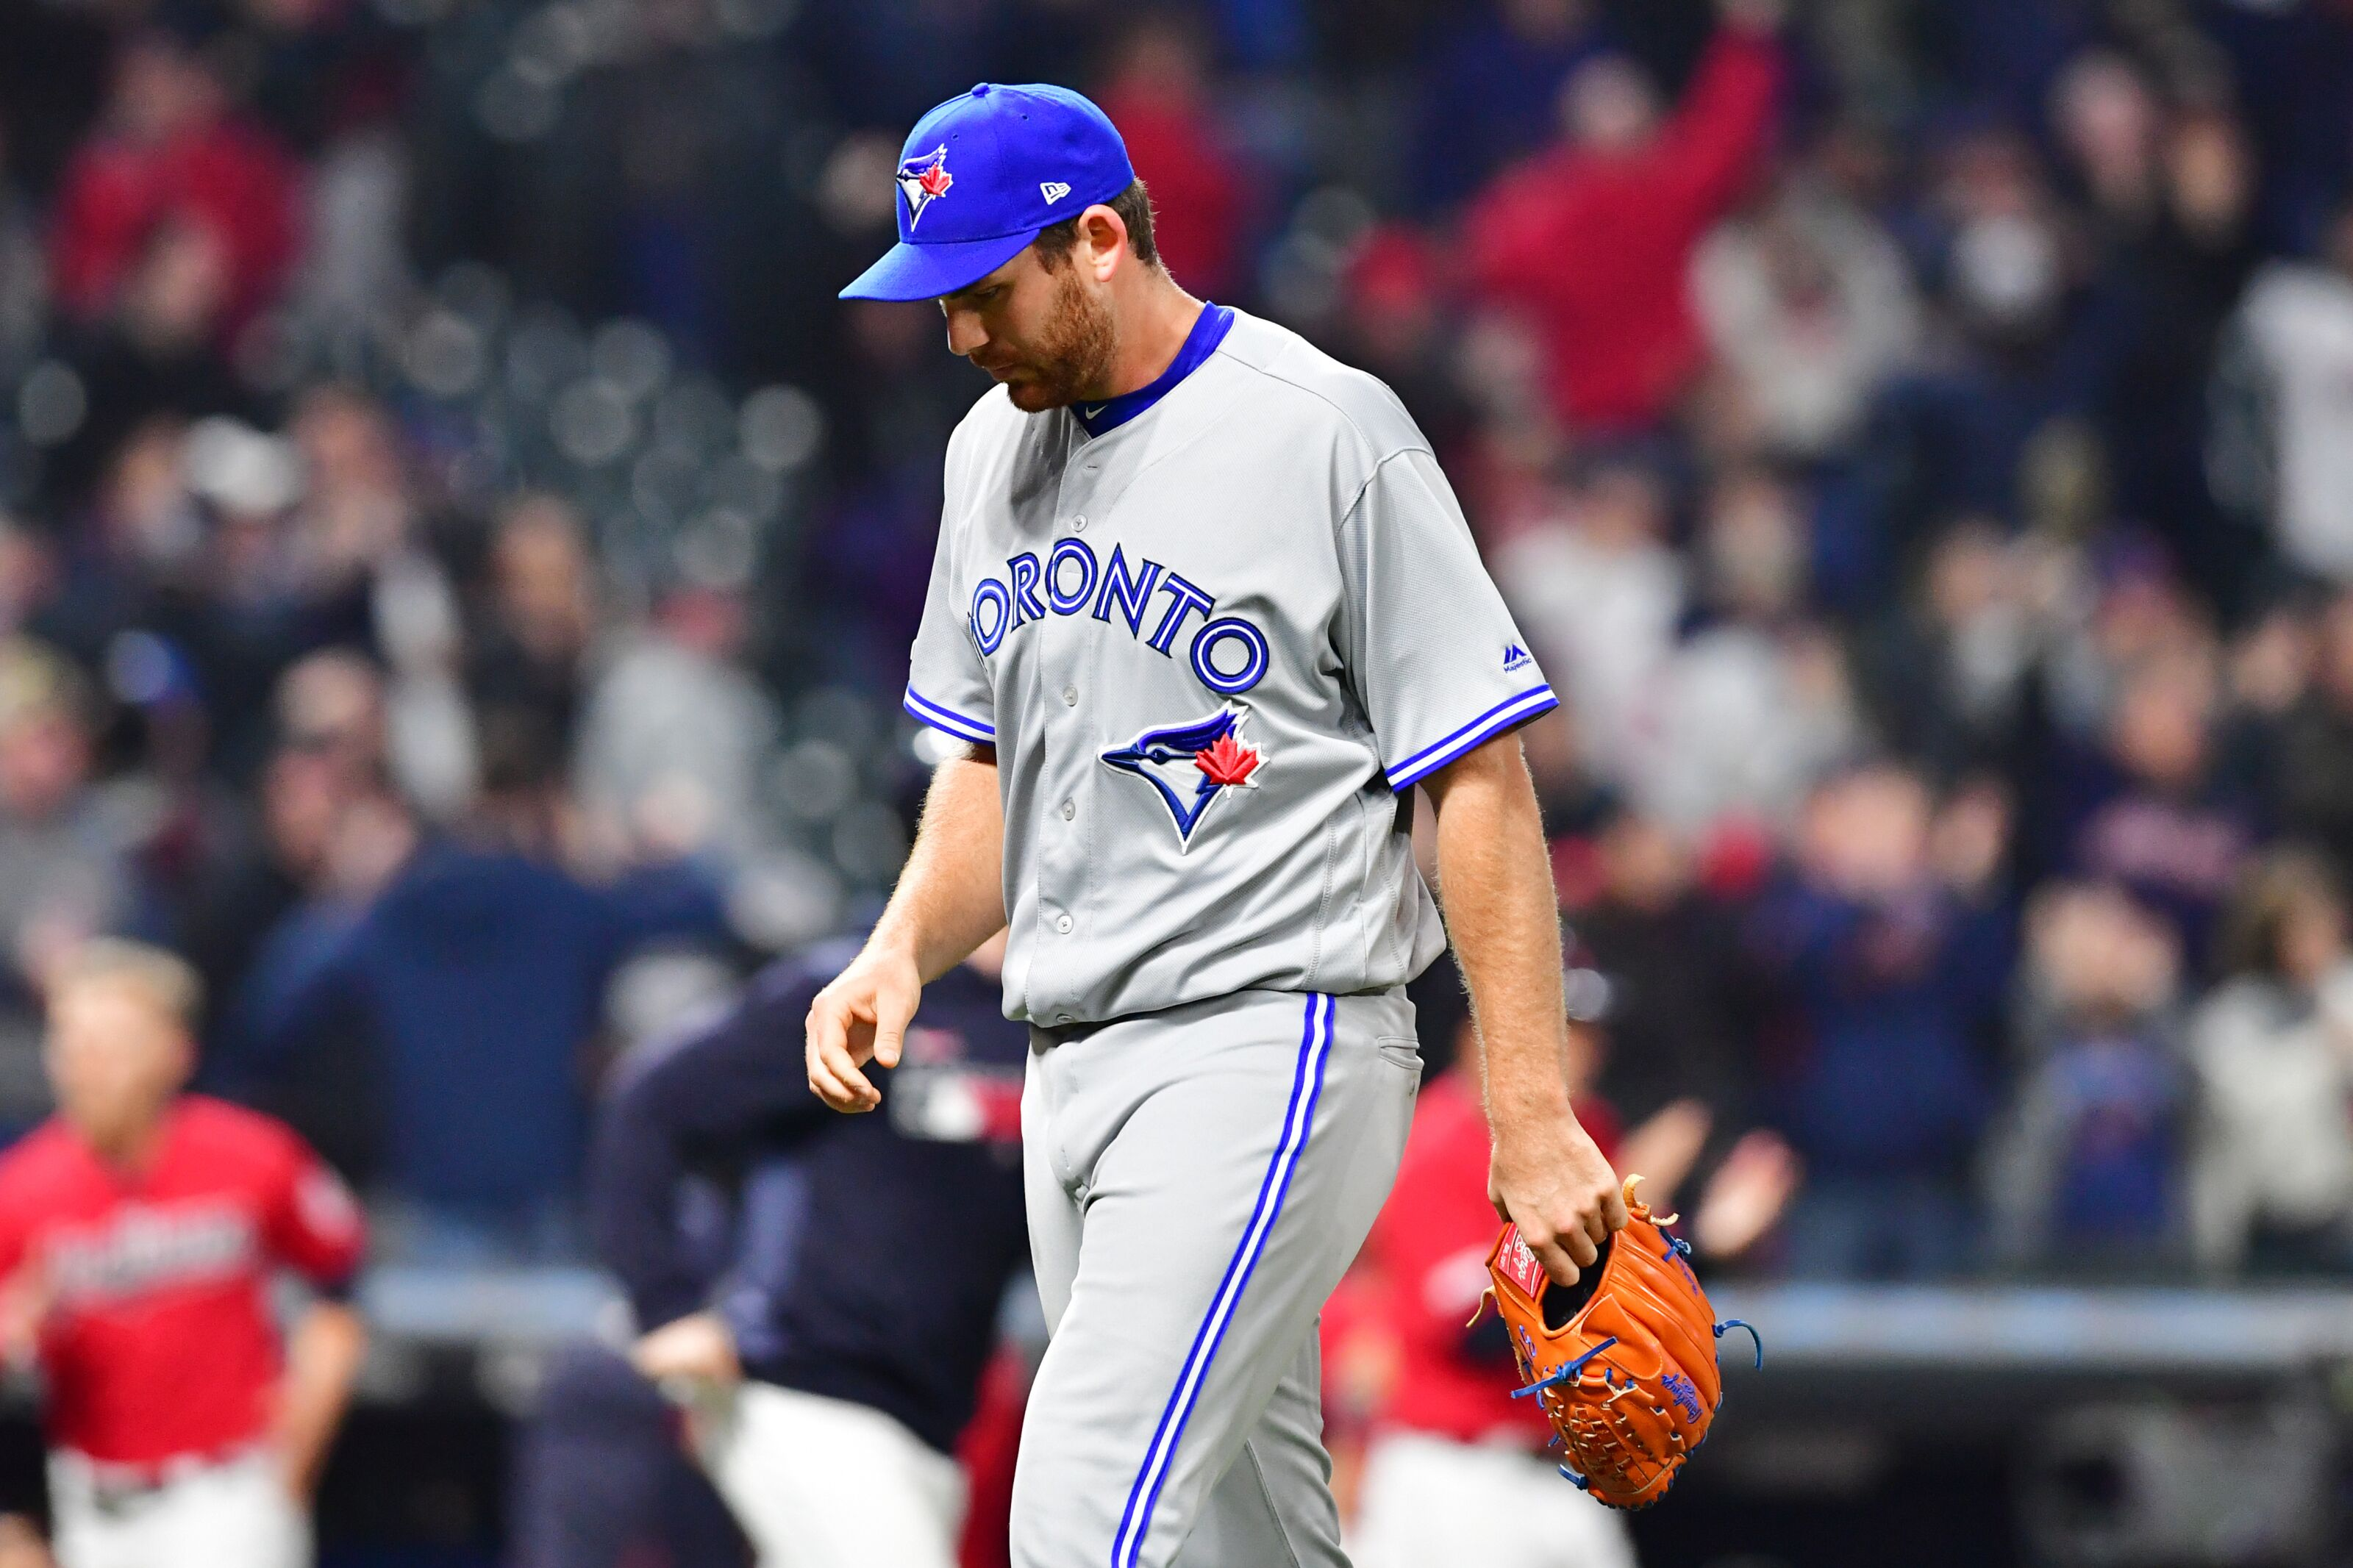 Blue Jays: Without fair value in return, what was the rush?